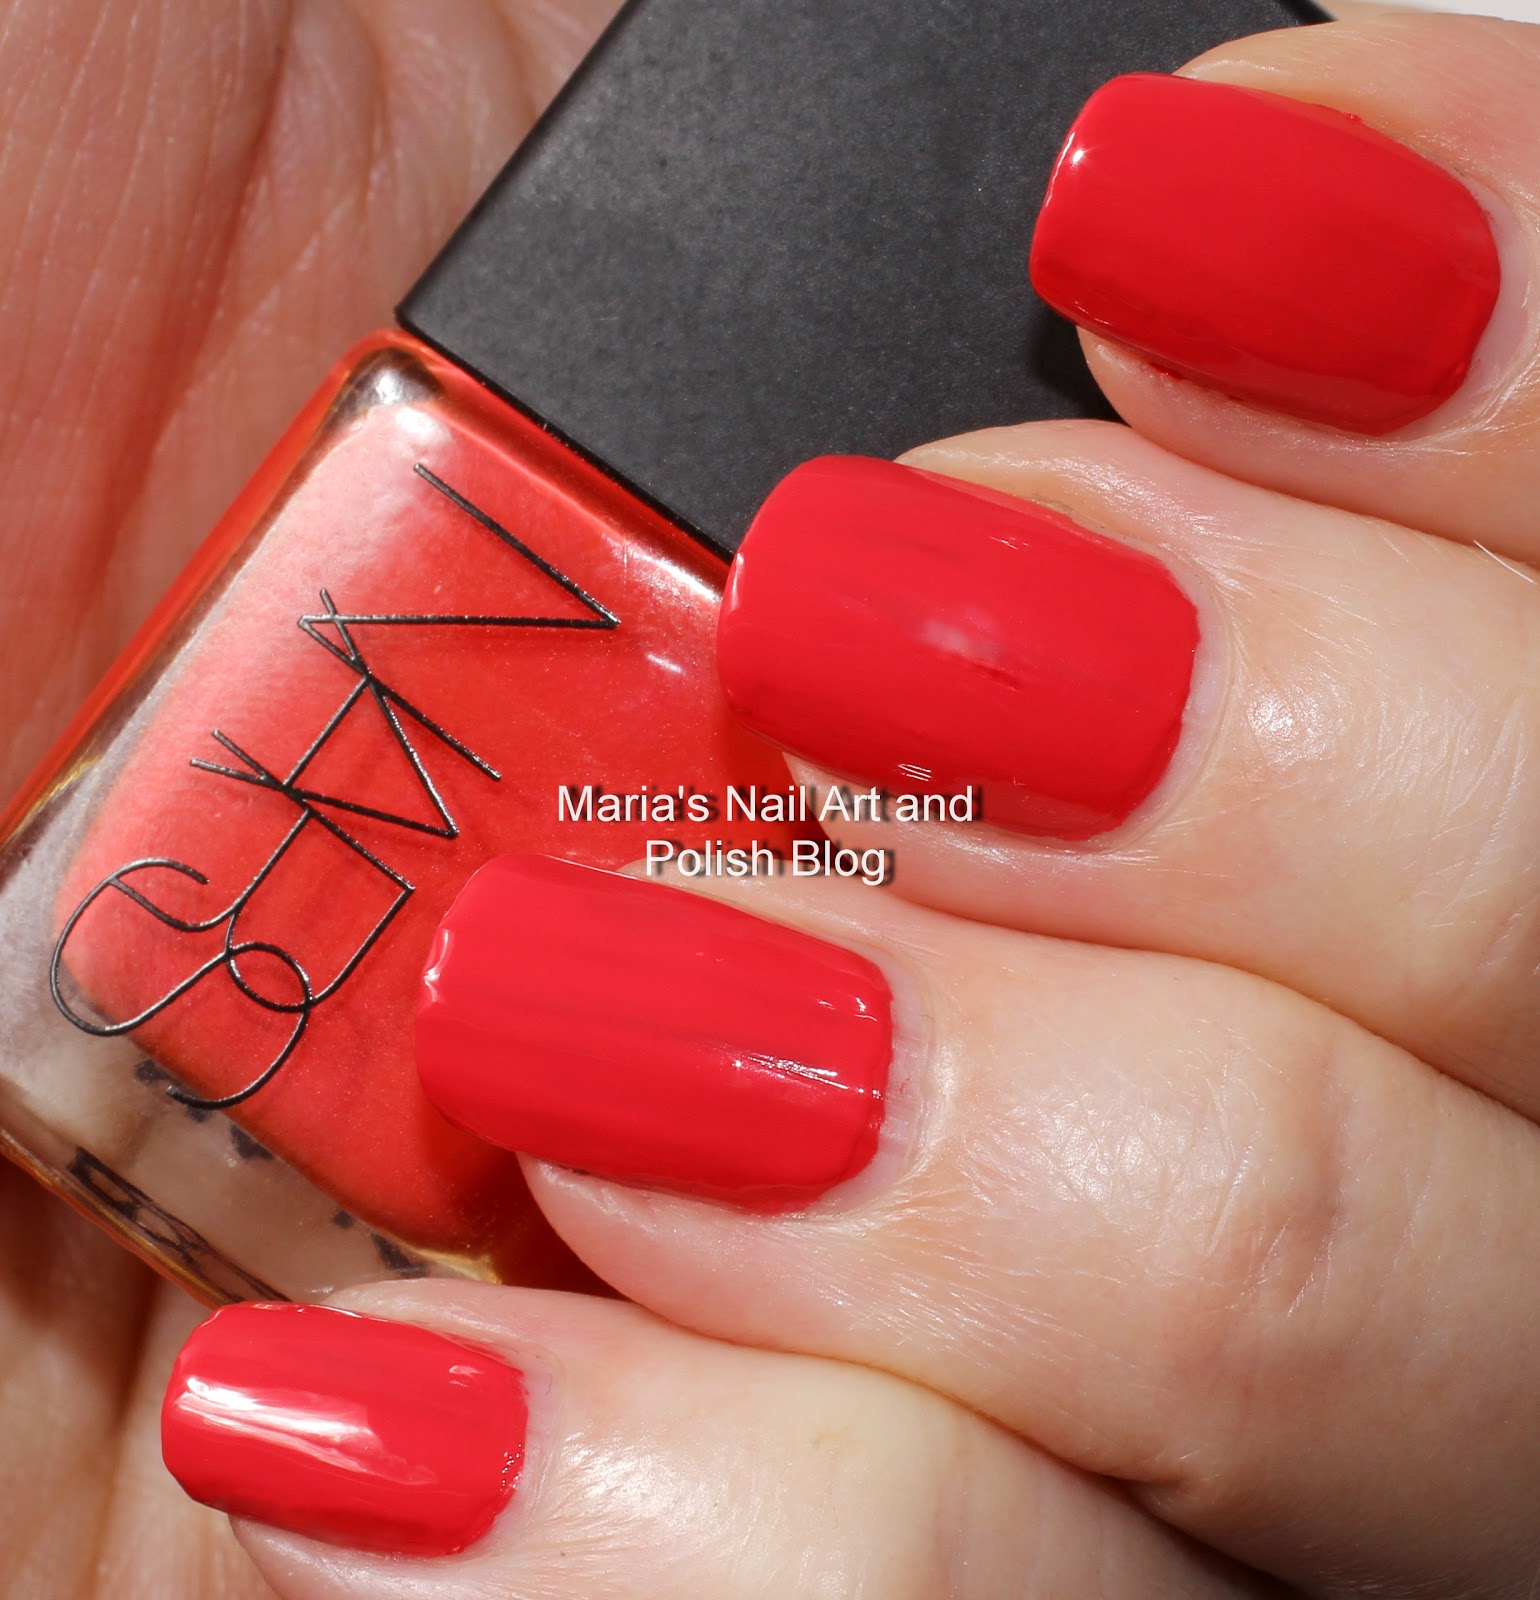 Marias Nail Art And Polish Blog Flushed With Stripes And: Marias Nail Art And Polish Blog: NARS Beautiful Stranger